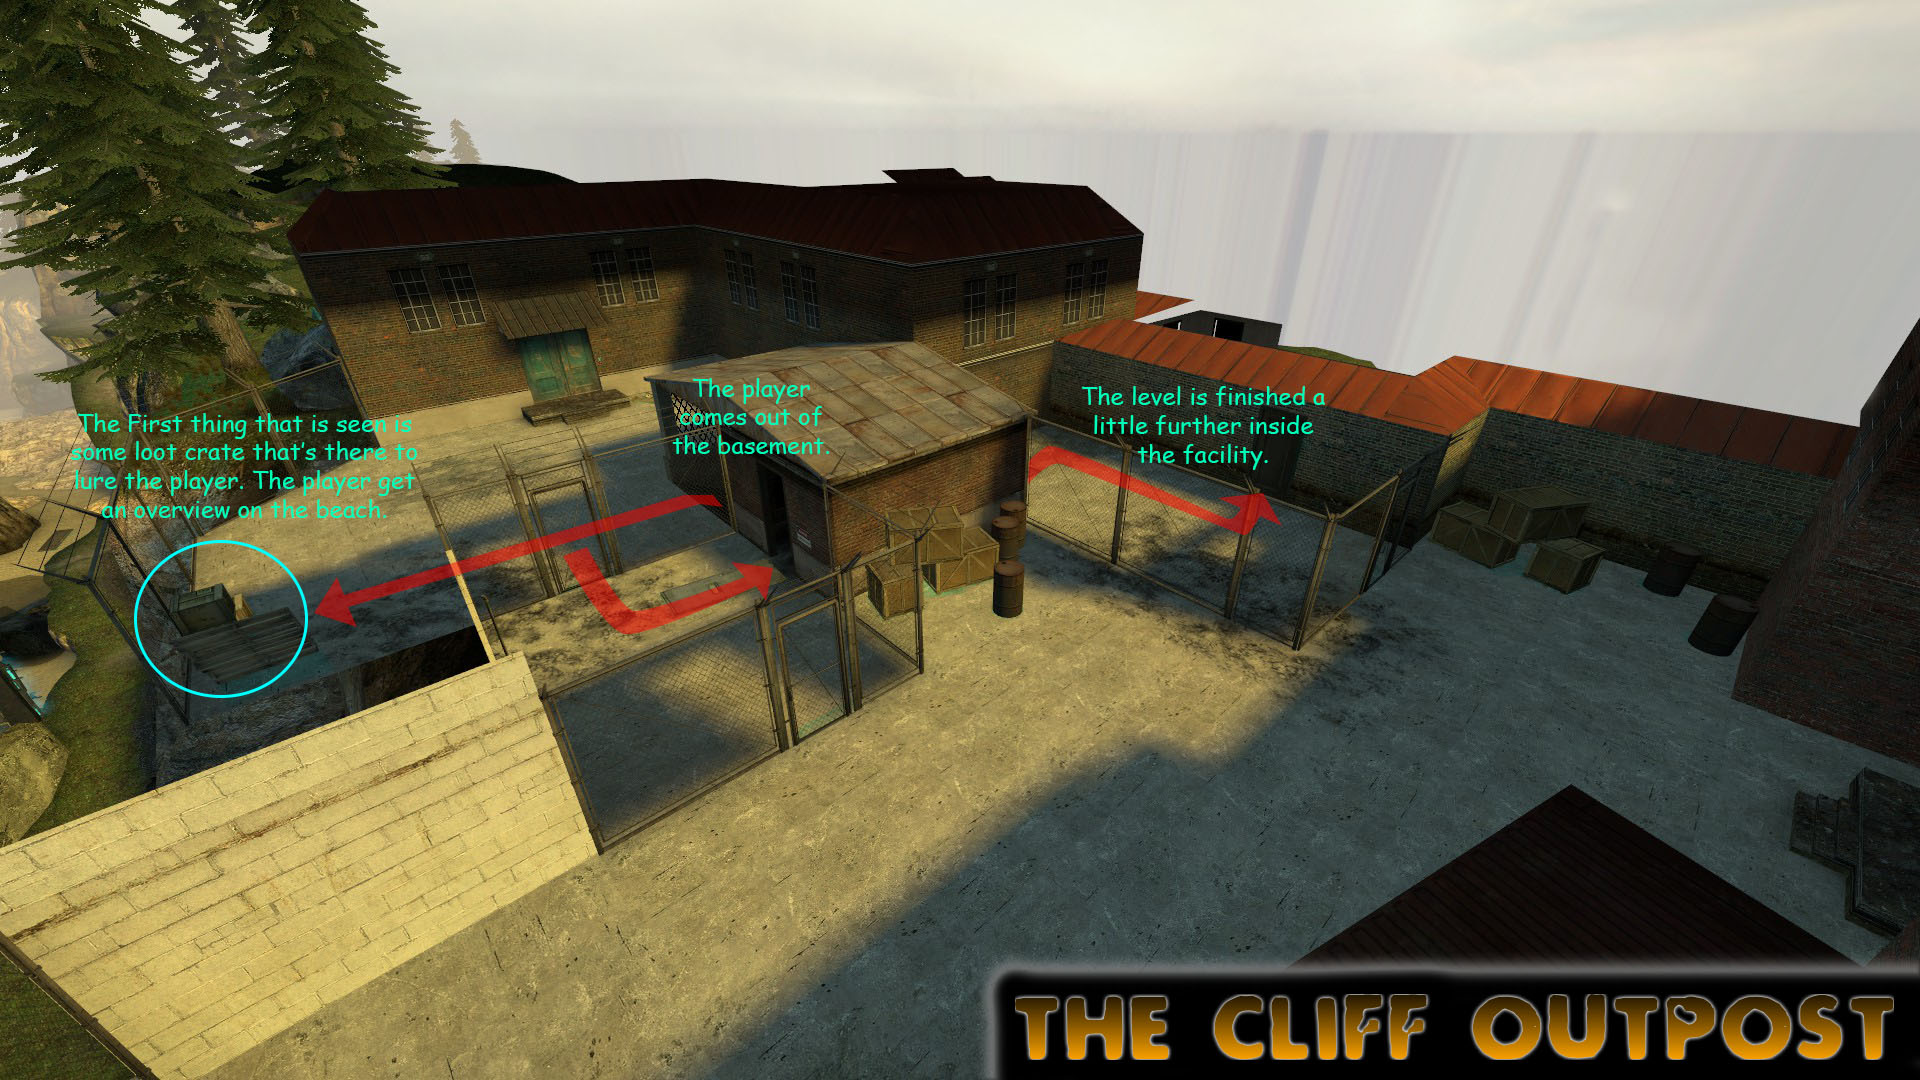 TheCliffOutpost.jpg